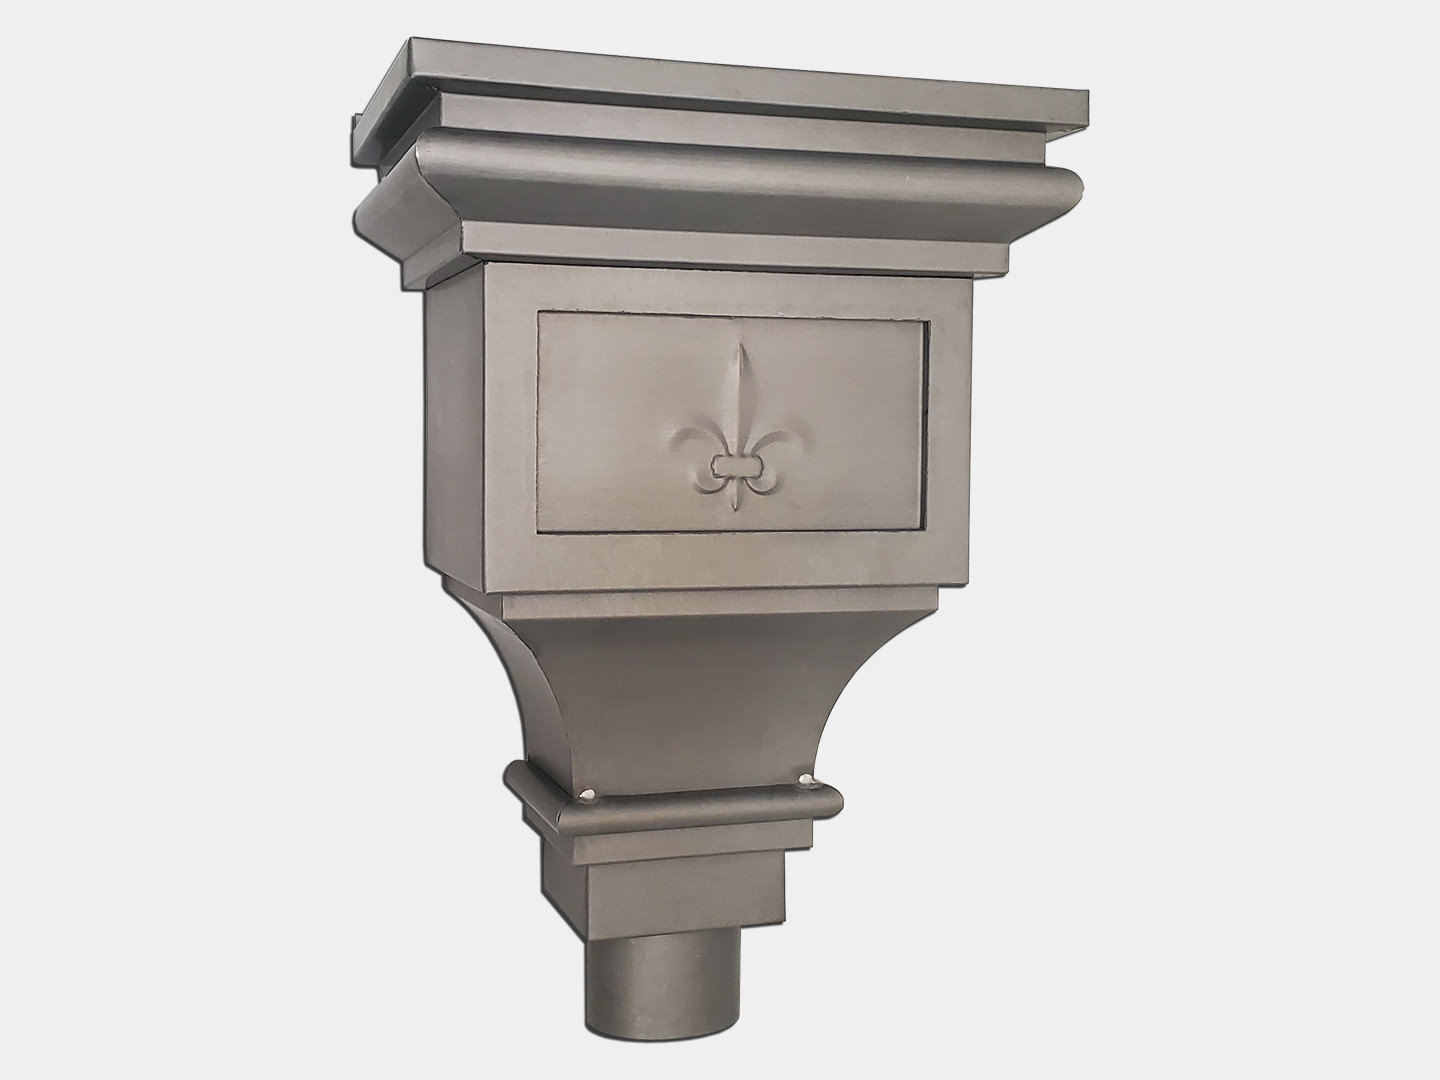 Zinc Churchill Conductor Head for 4 inch downspout